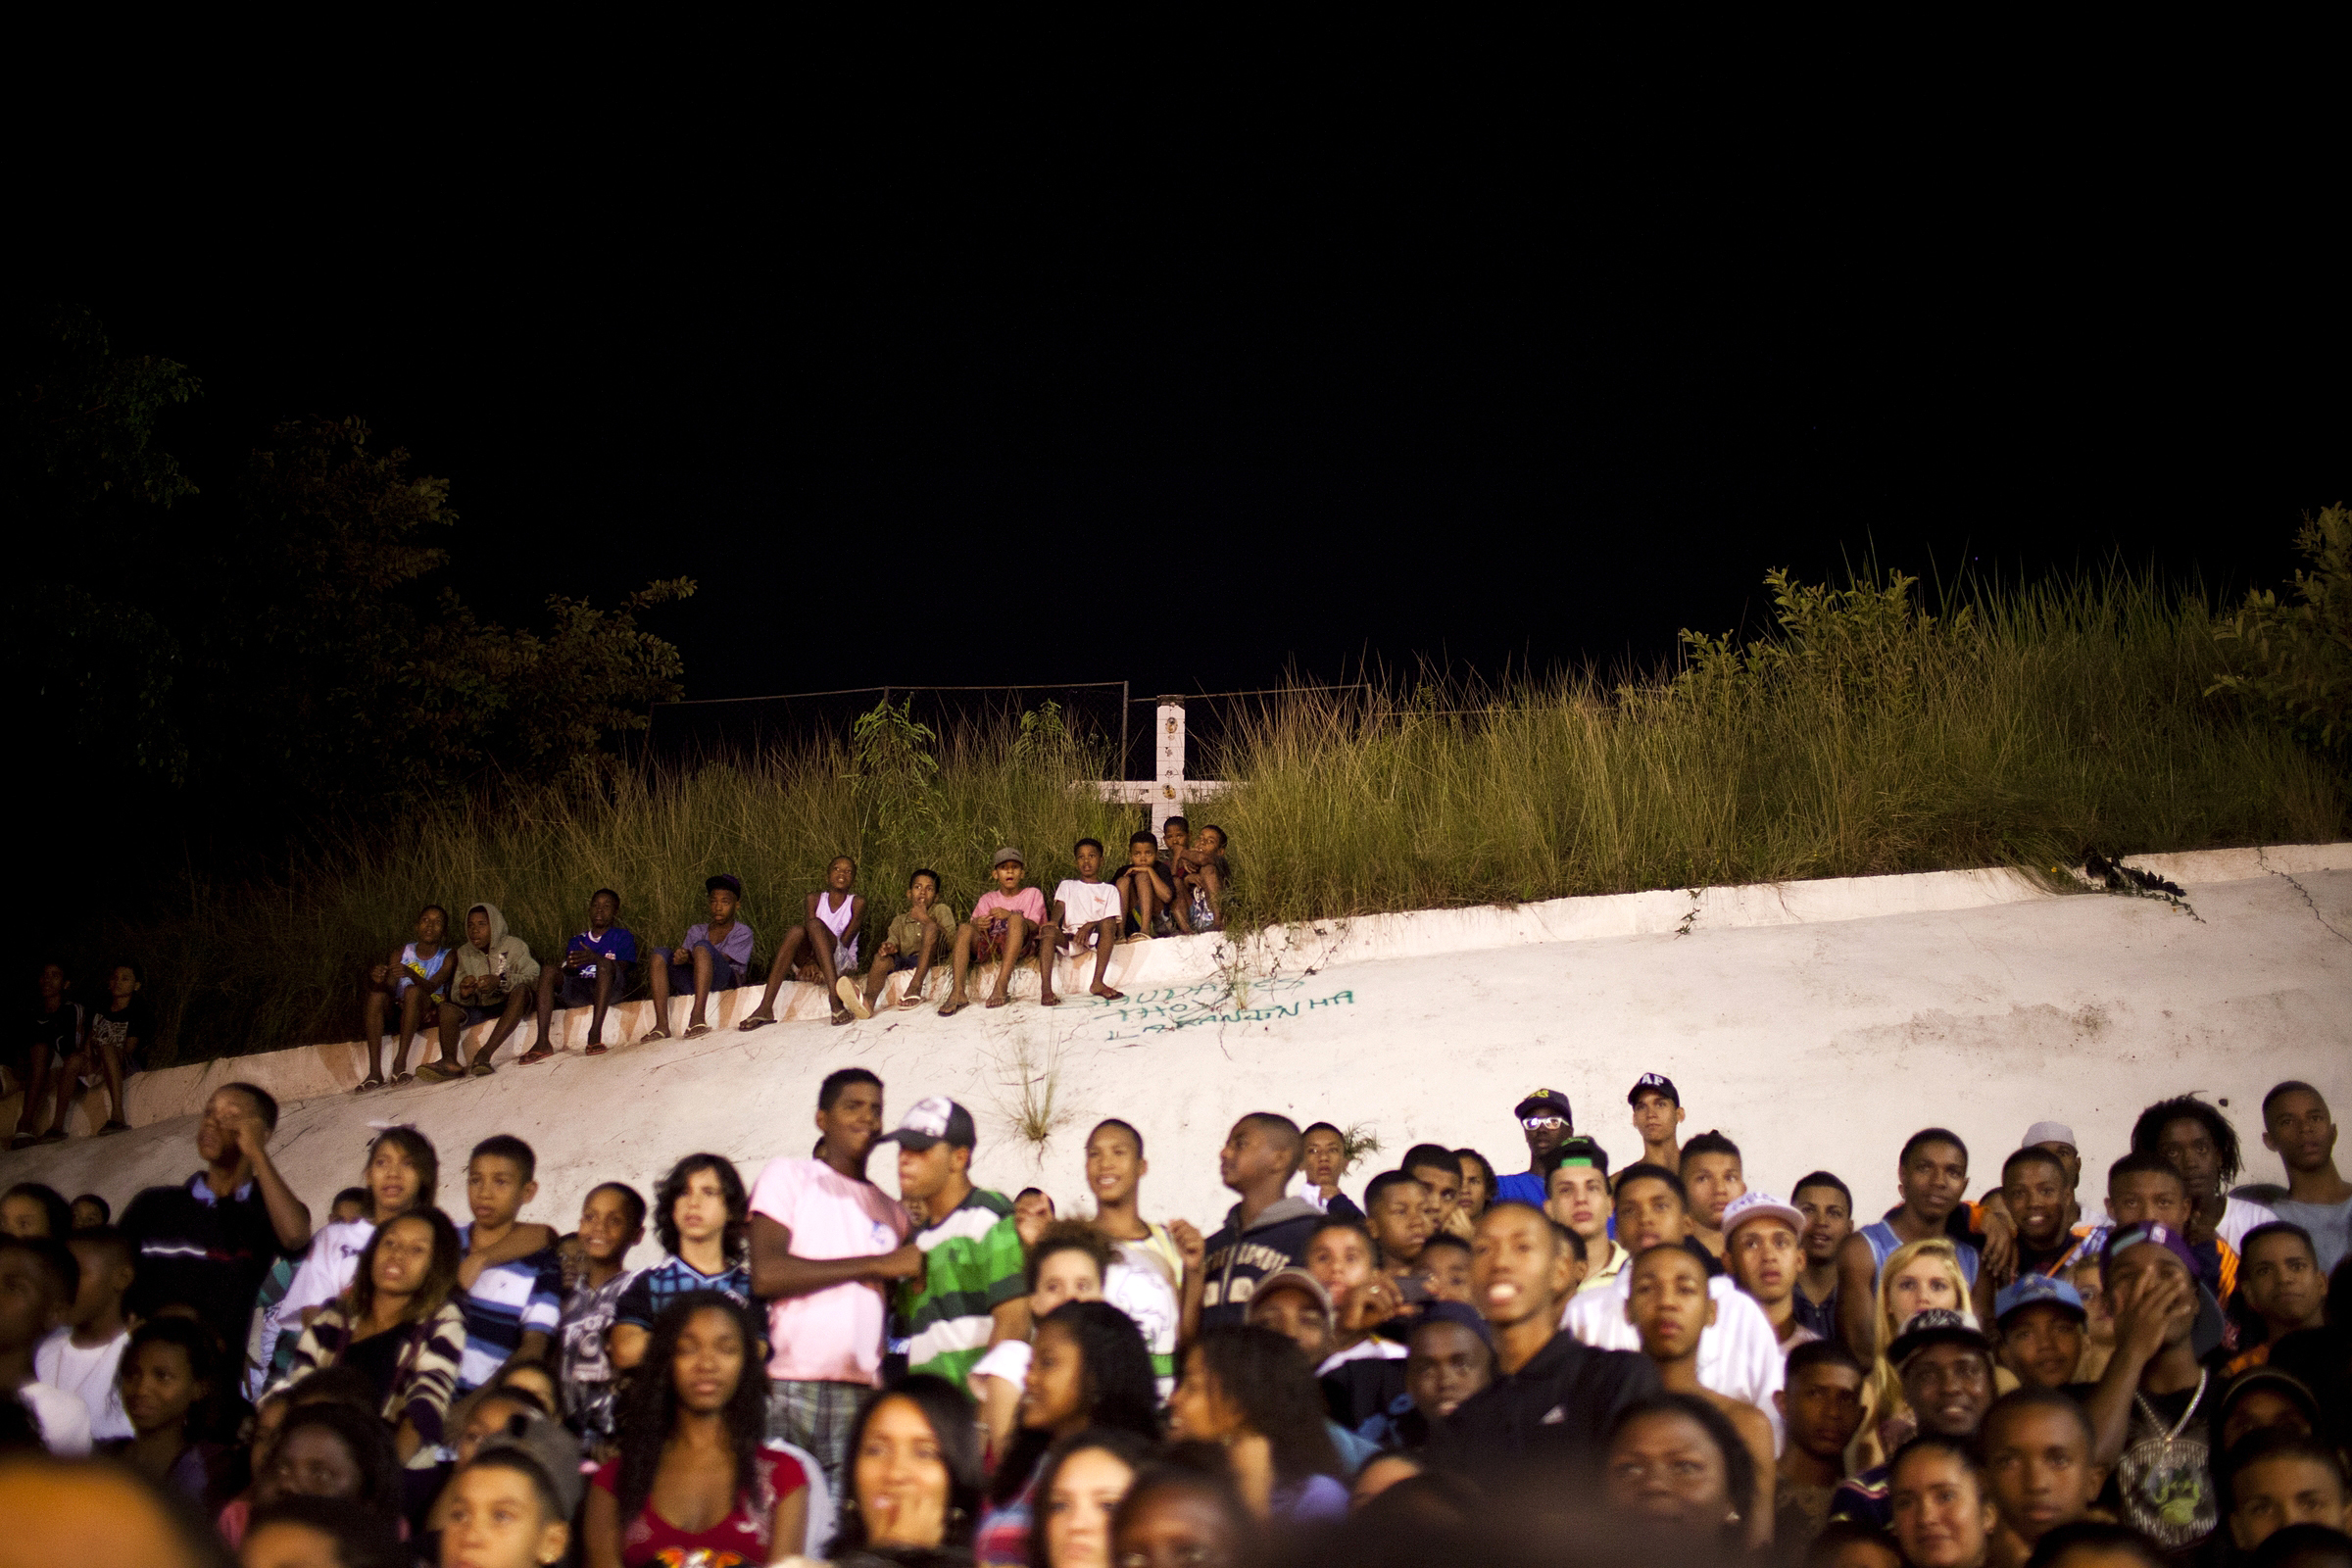 A crowd watches Batalha do Passinho, a dance competition. While some batalhas are large sponsored events, others break out at informal dance parties.